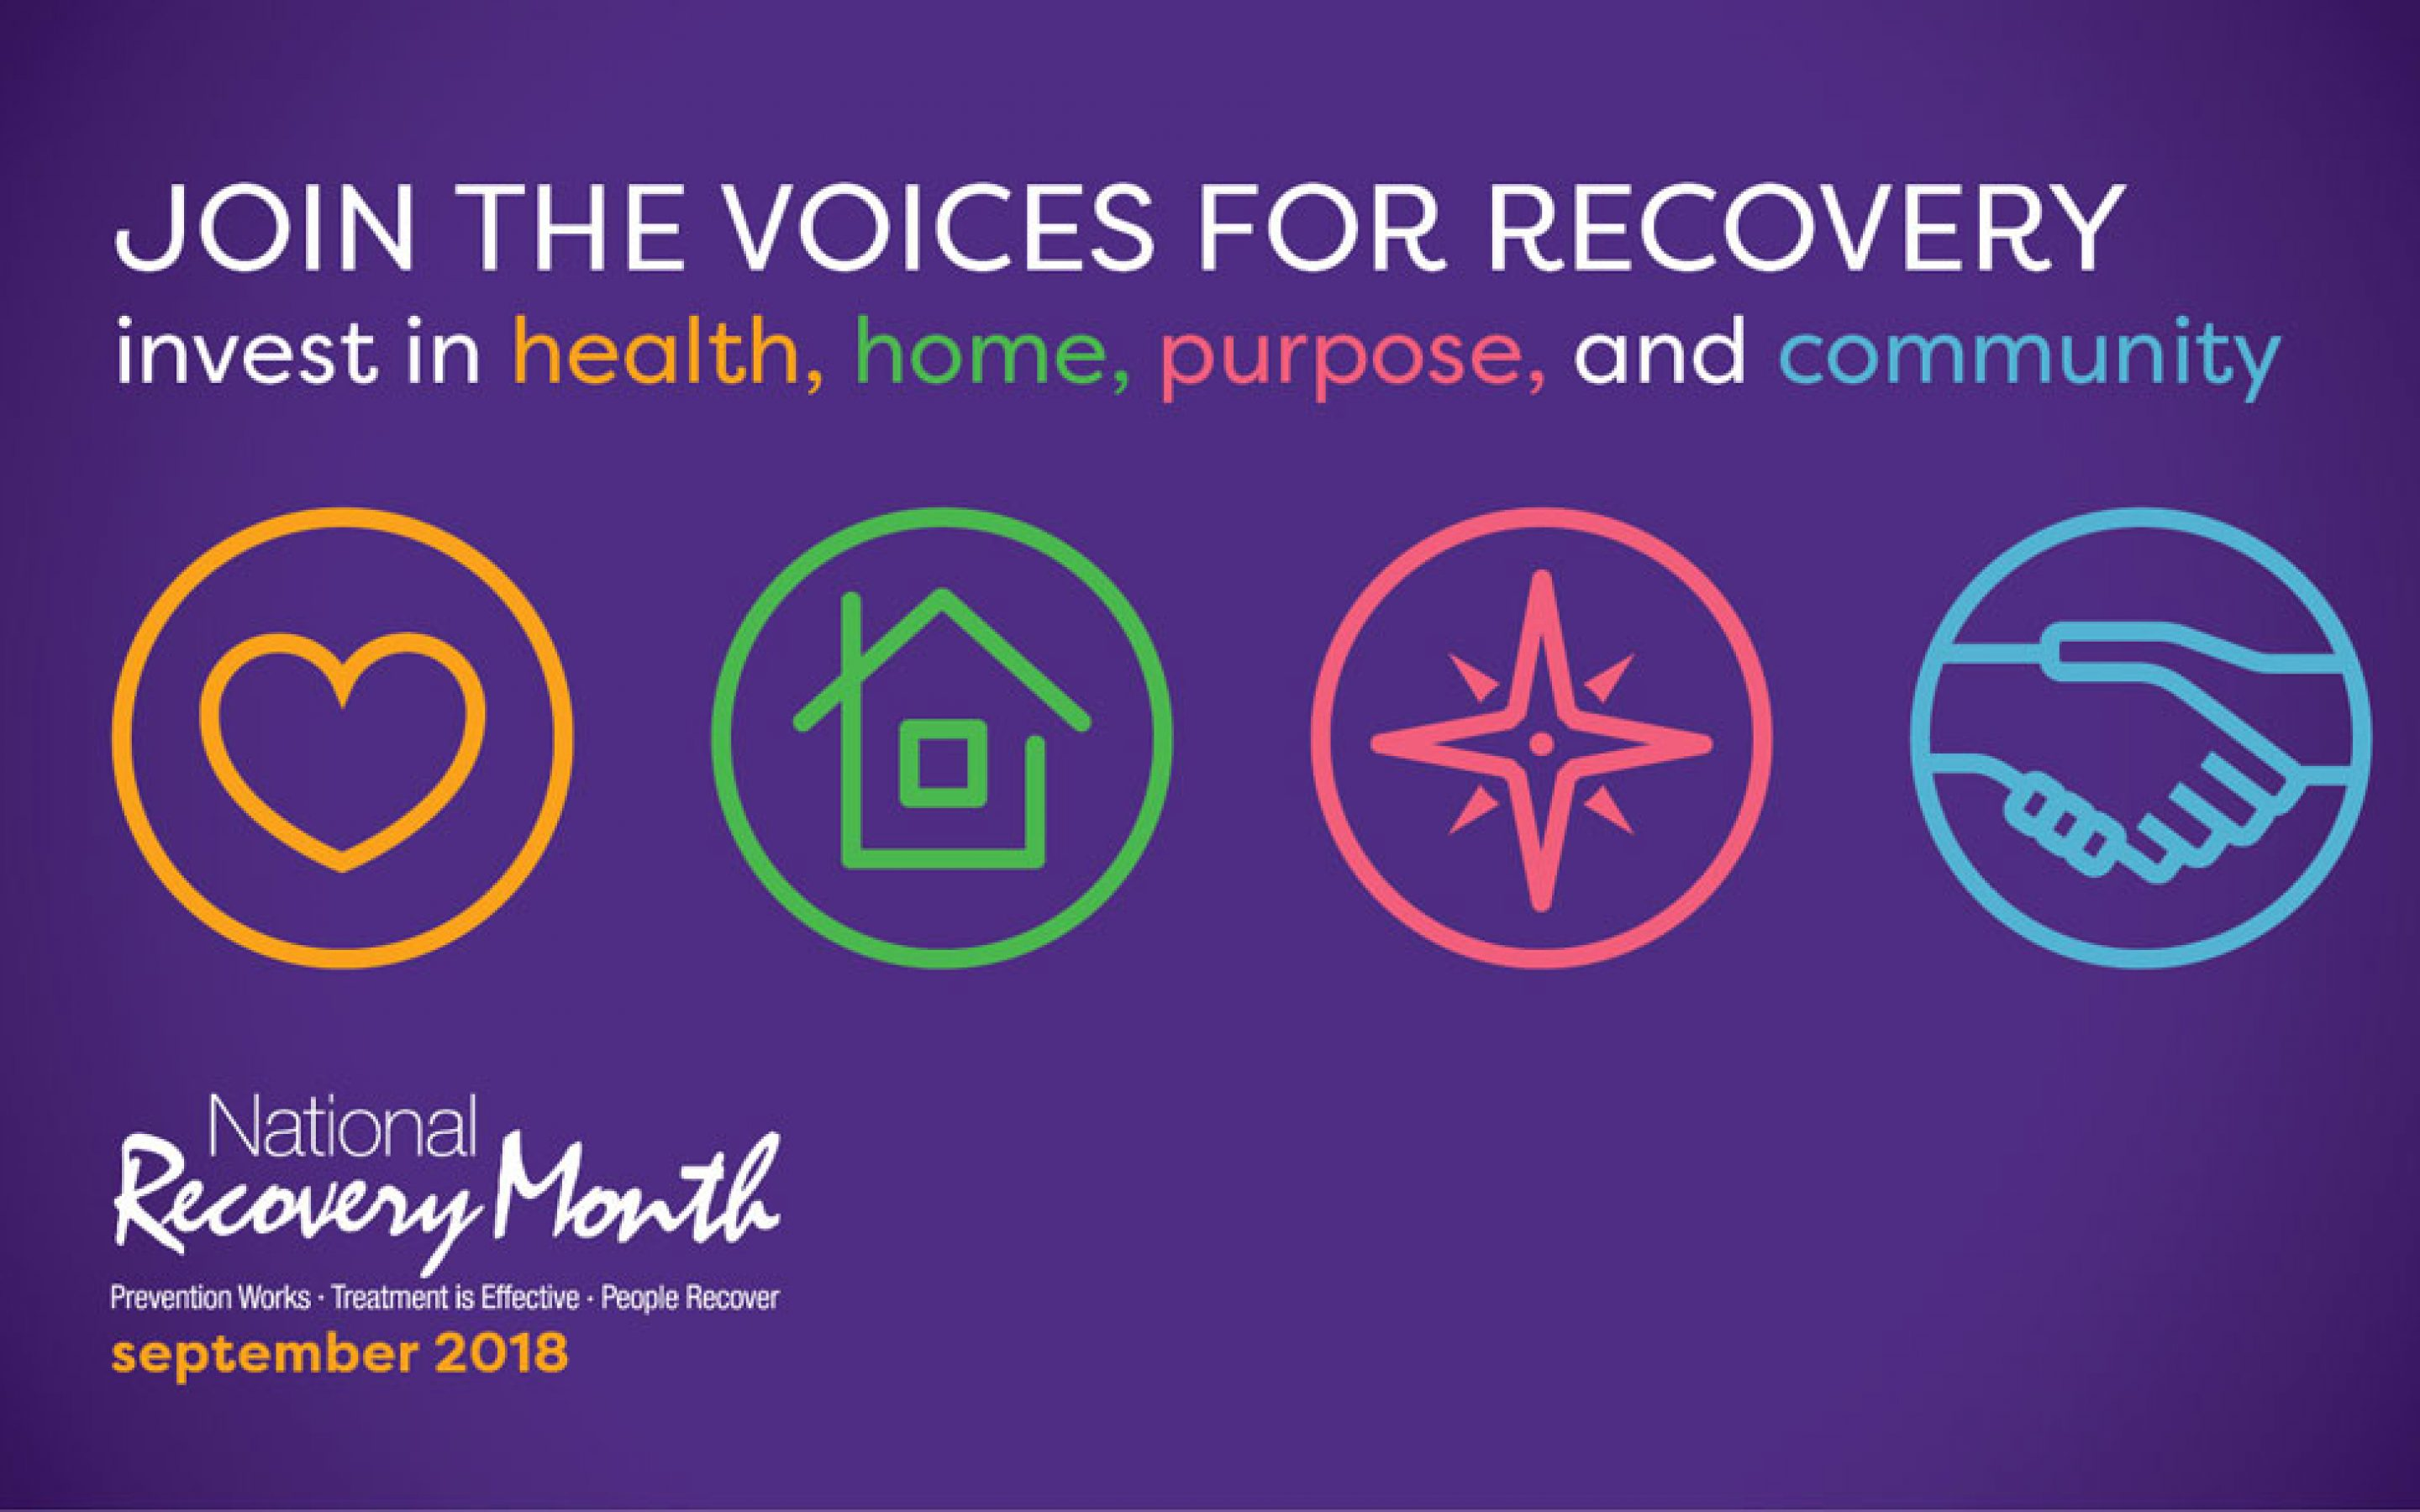 September is National Recovery Month!